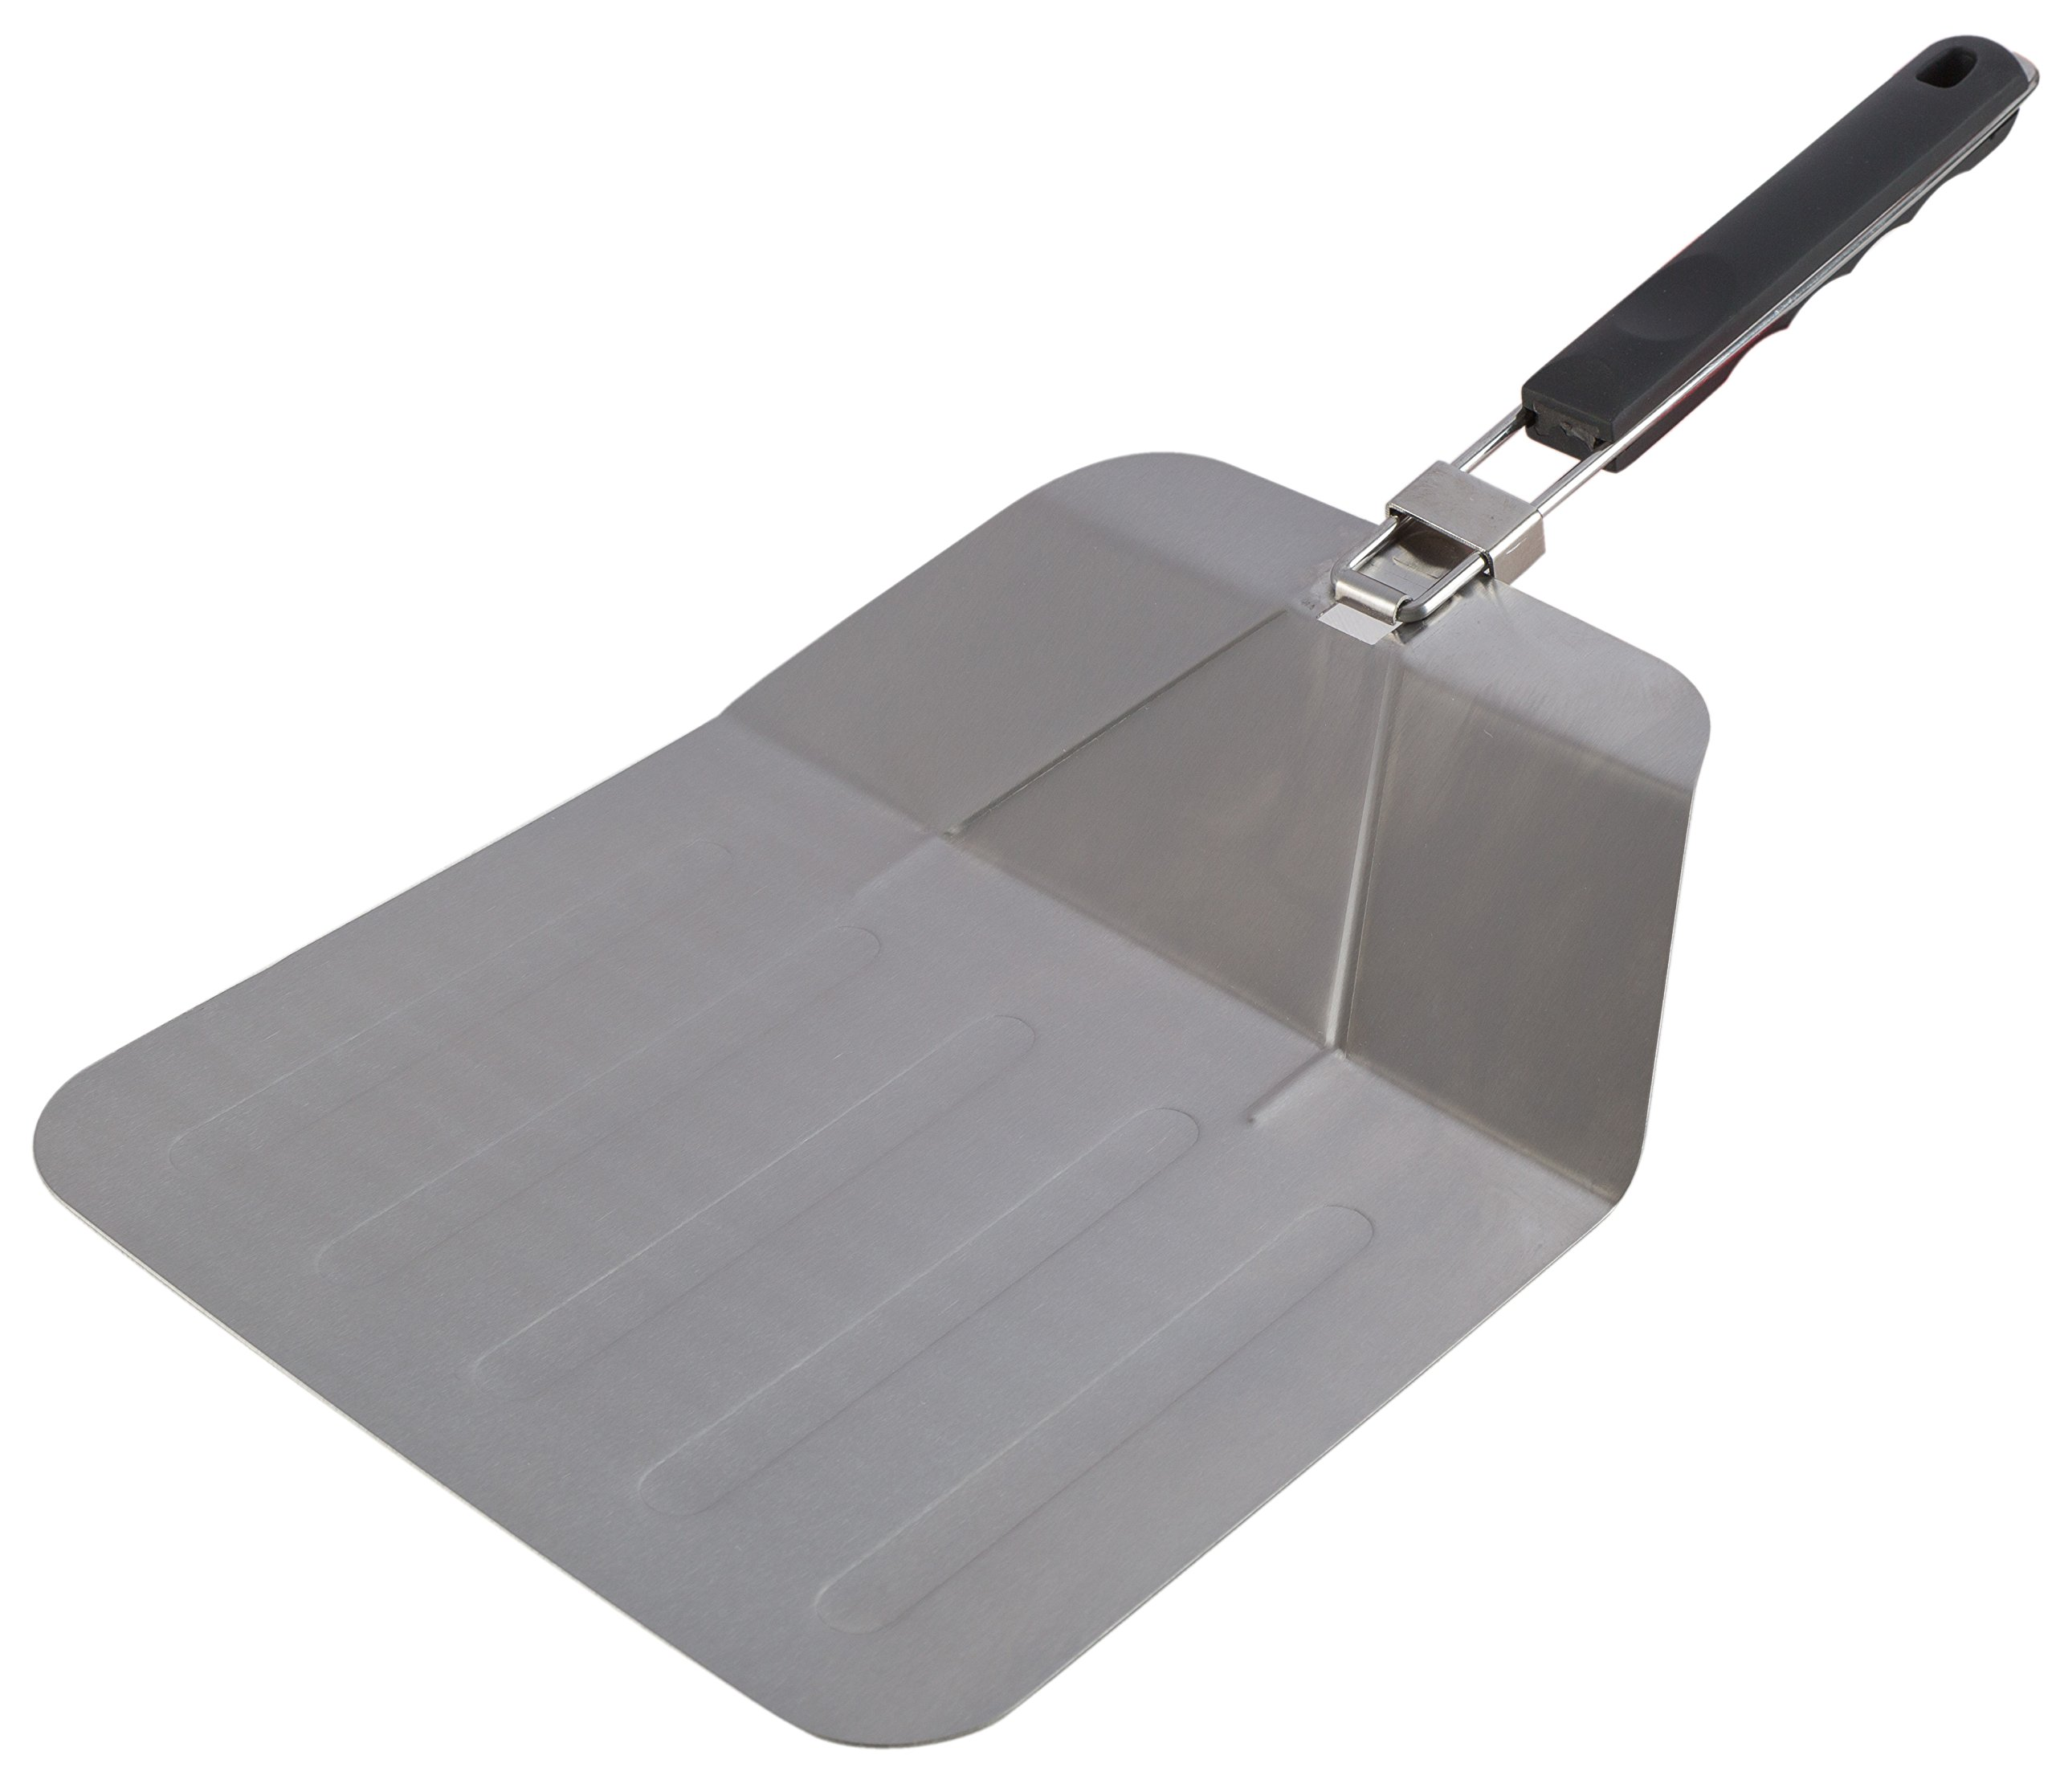 Kitchen Winners Stainless Steel Pizza Peel With Folding Handle.